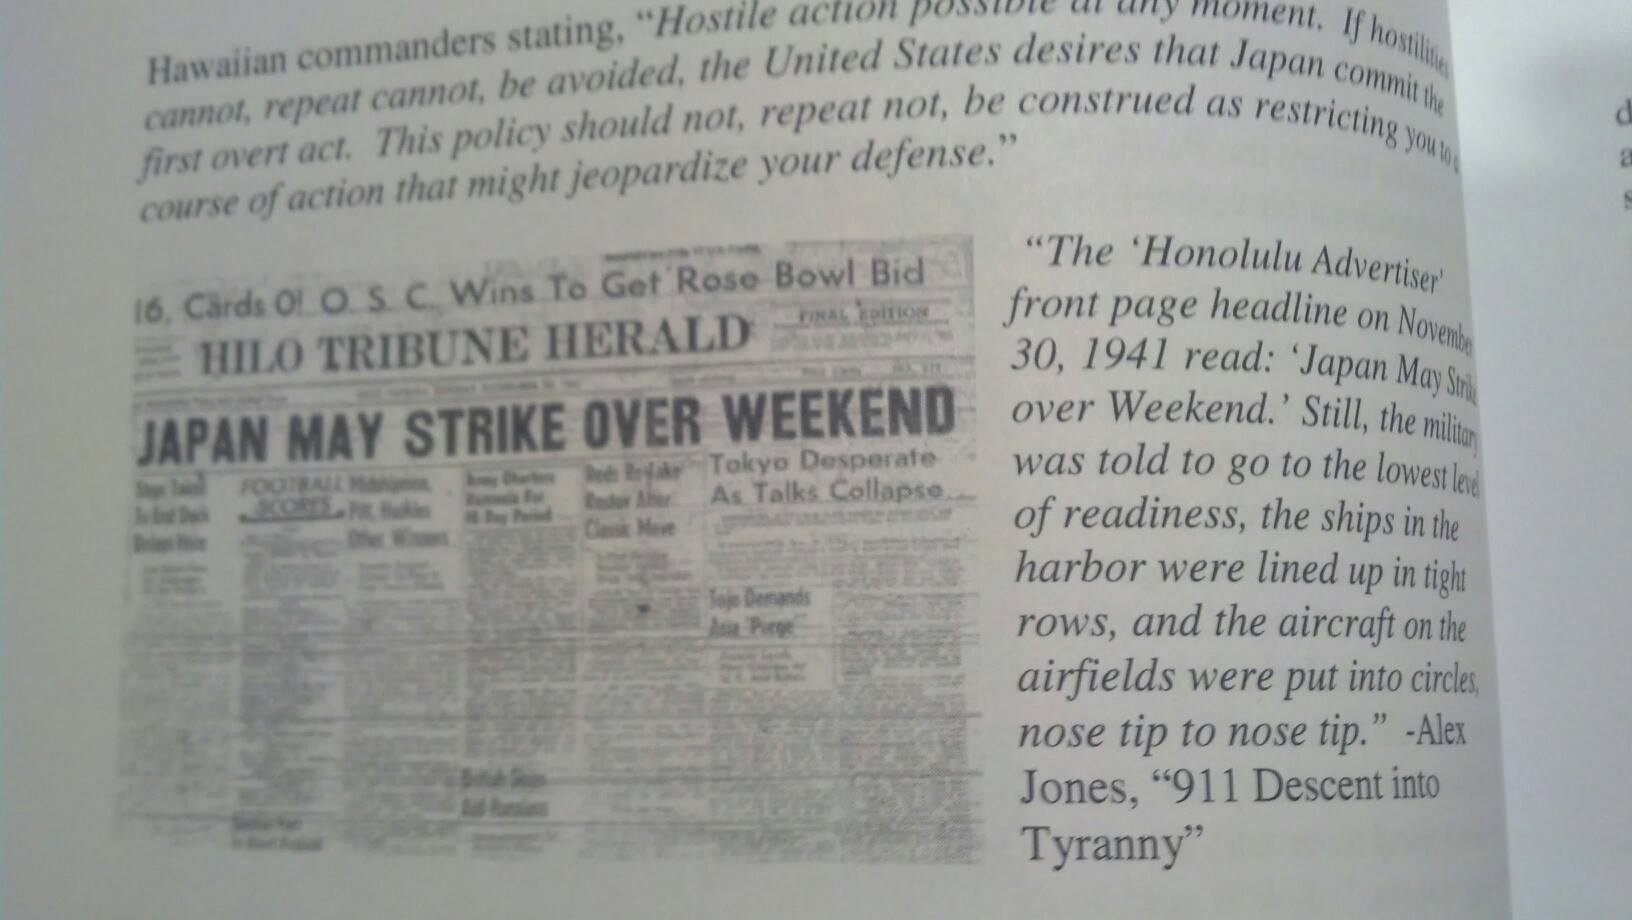 Hilo Tribune Herald: Japan May Strike Over Weekend